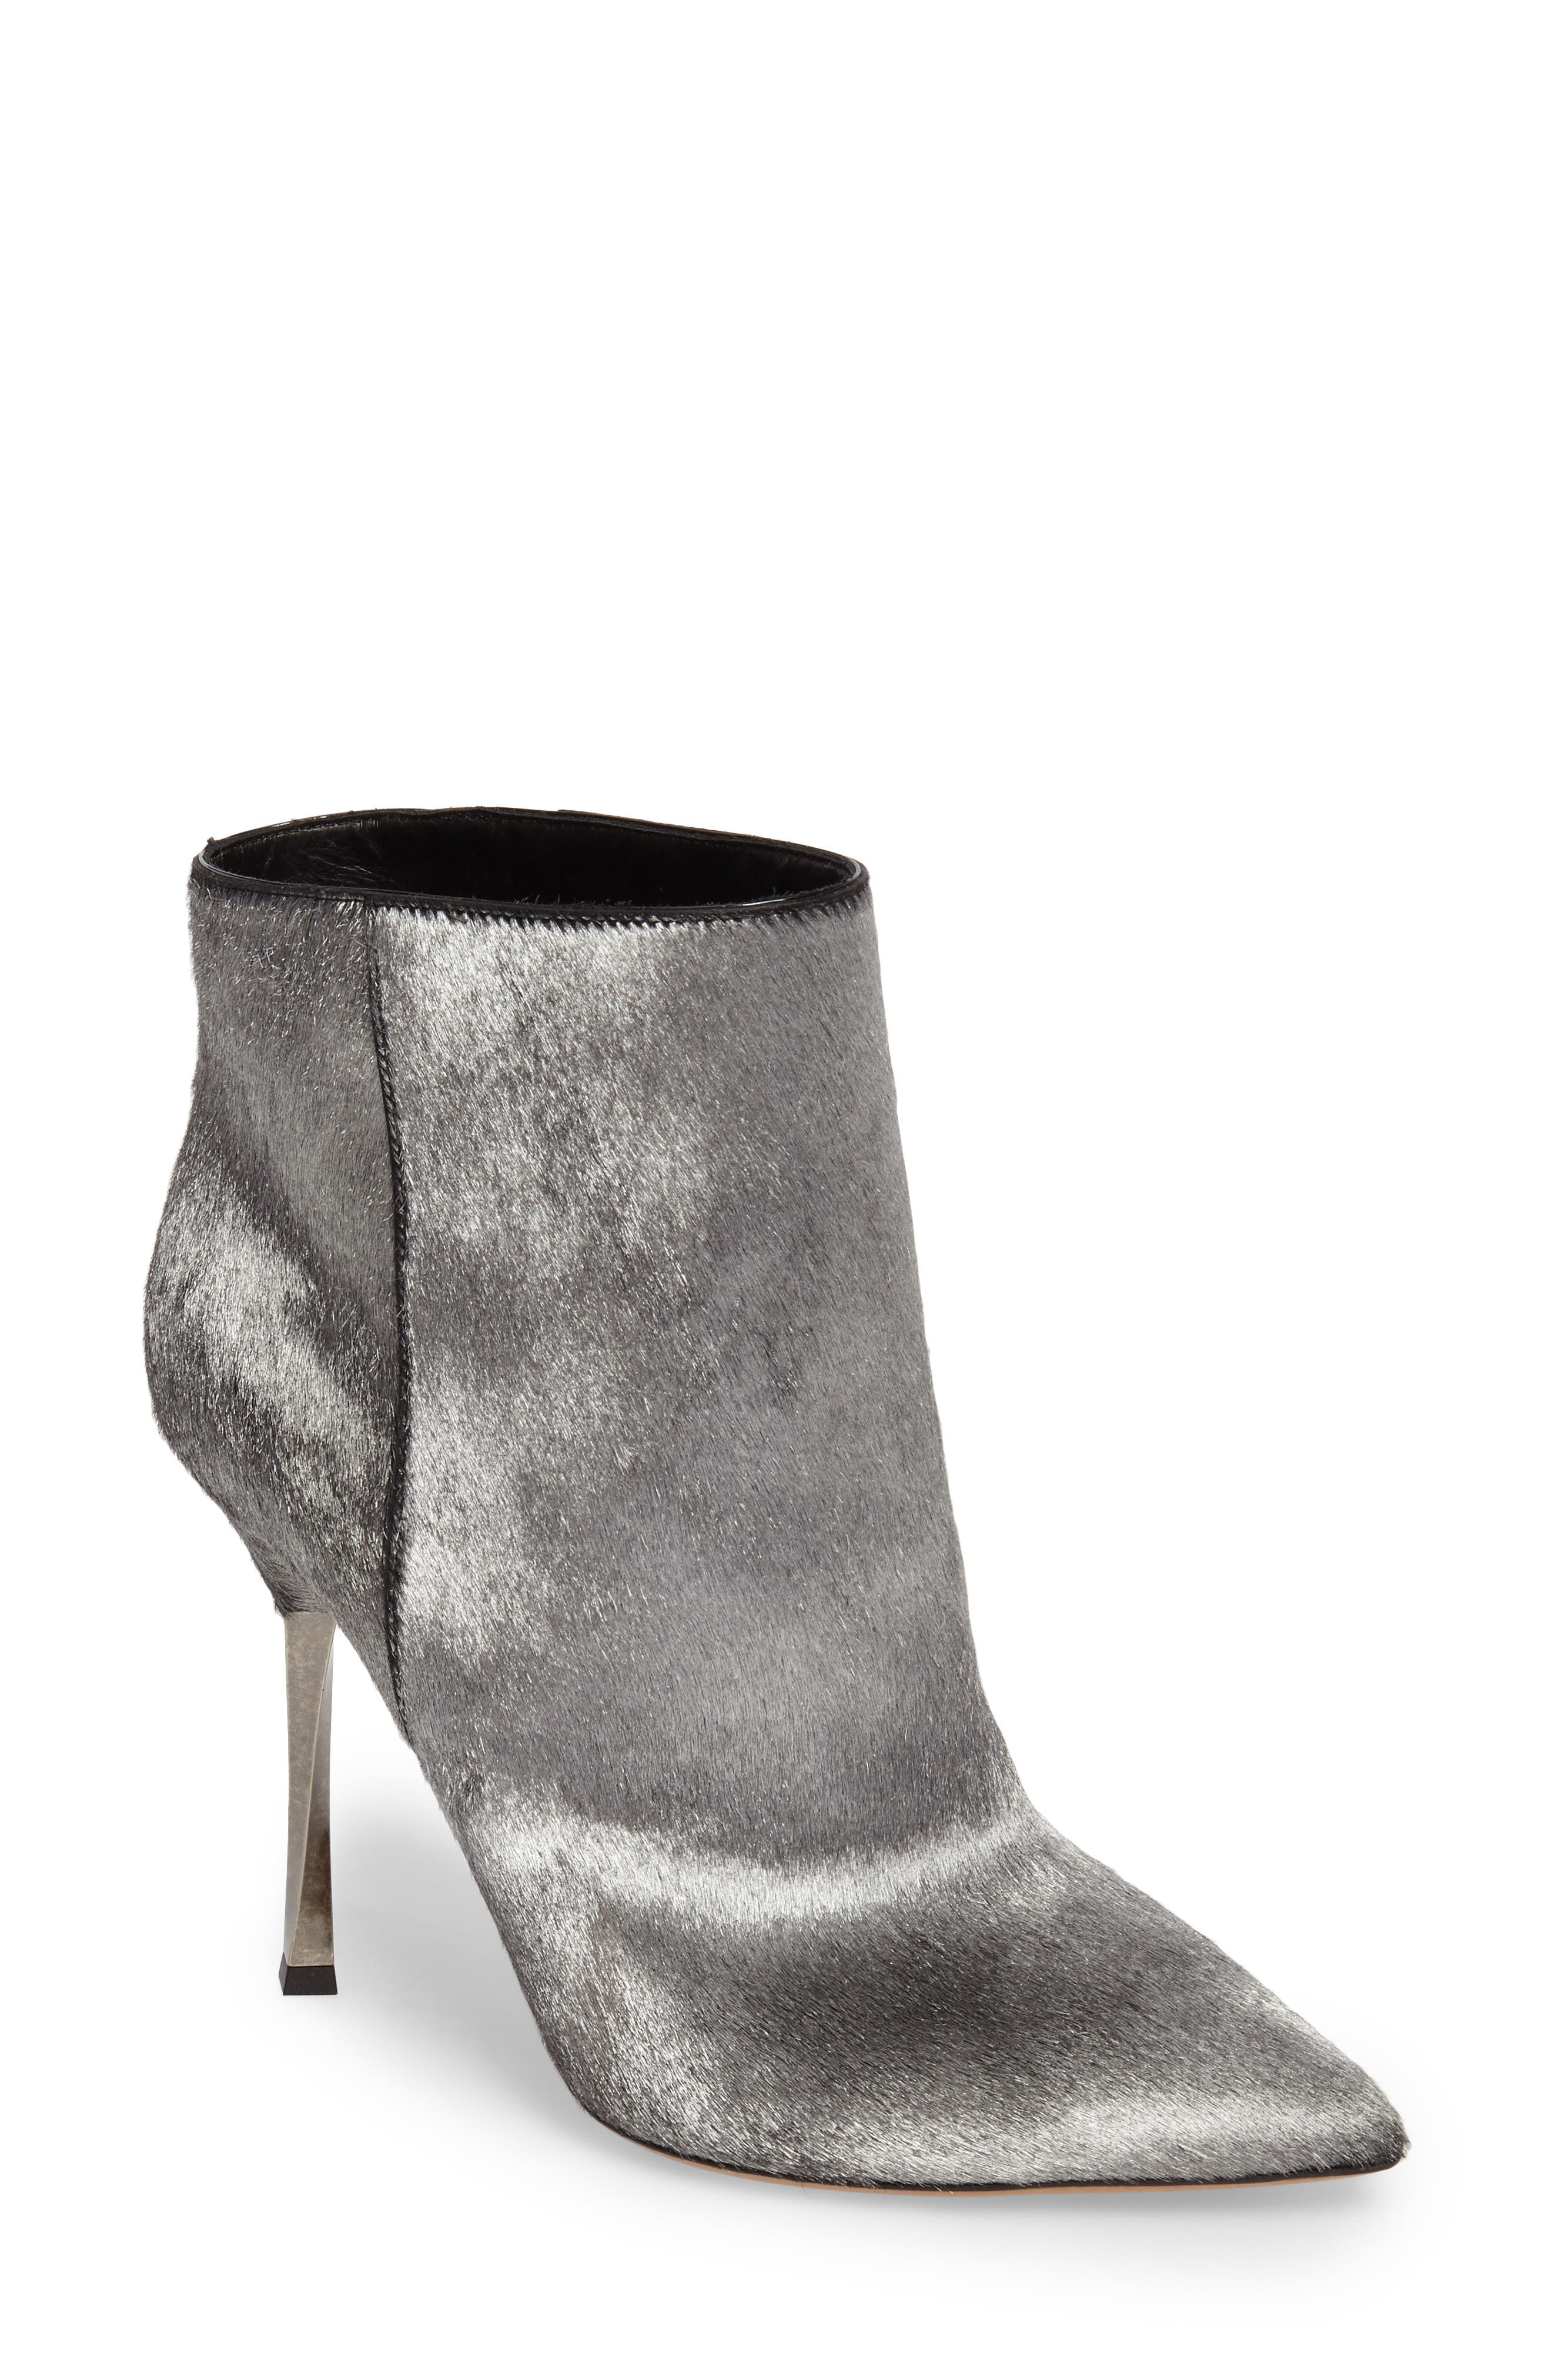 Alternate Image 1 Selected - VALENTINO GARAVANI Genuine Calf Hair Bootie (Women)